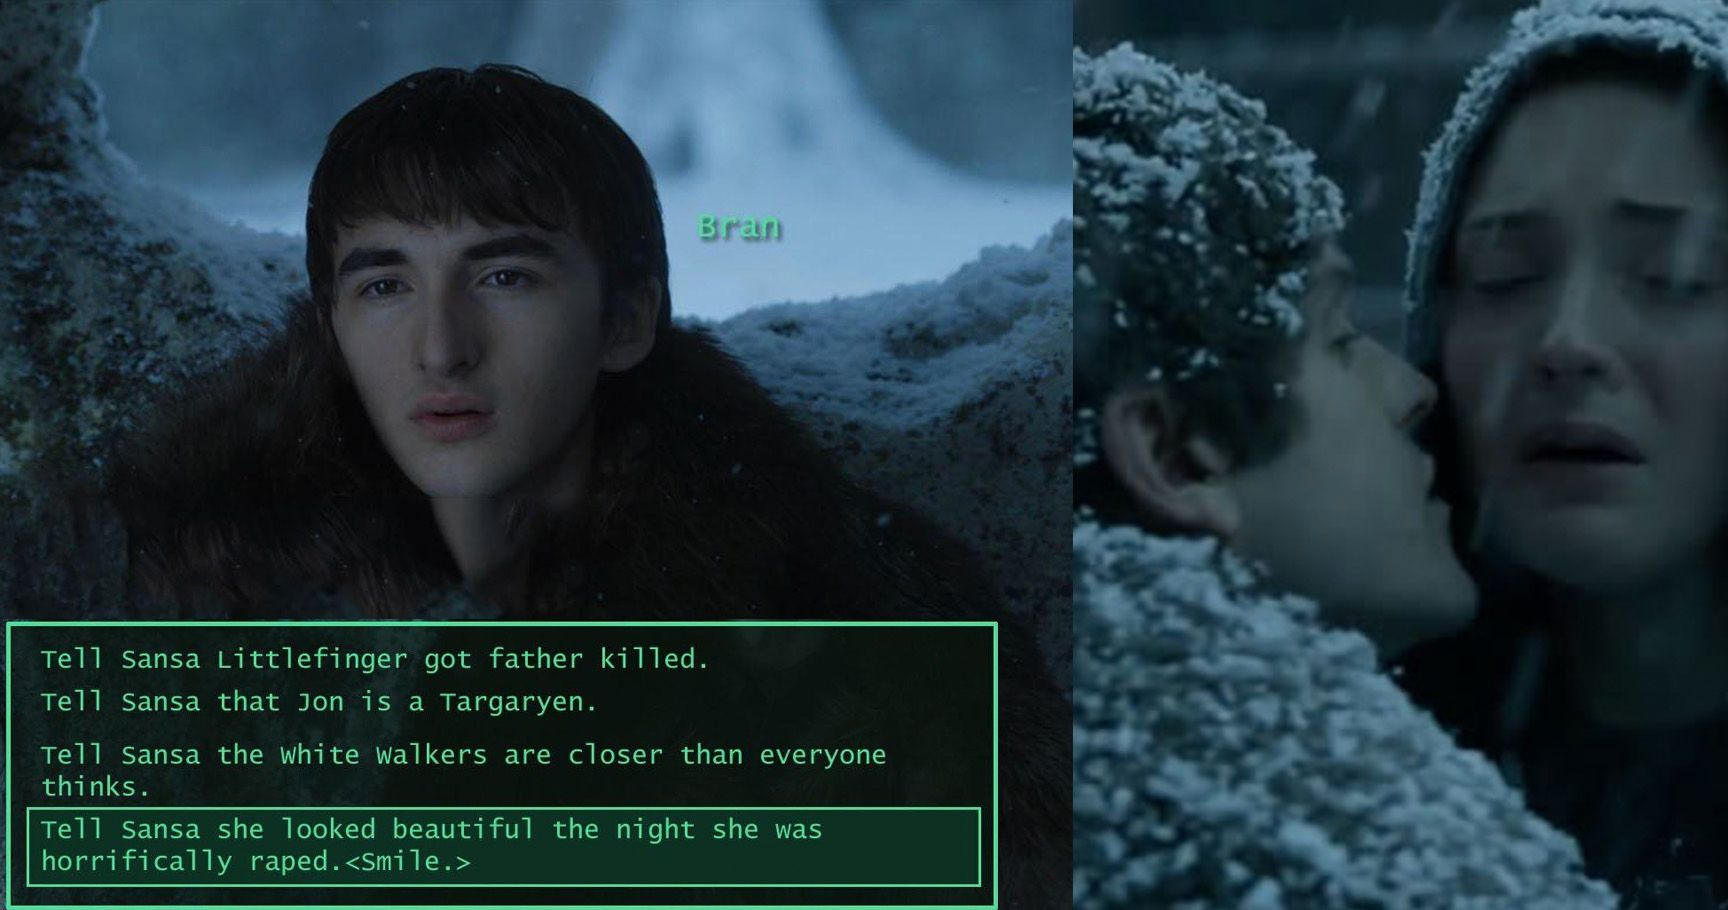 15 Despicable Times 'Game Of Thrones' Had It In For Women